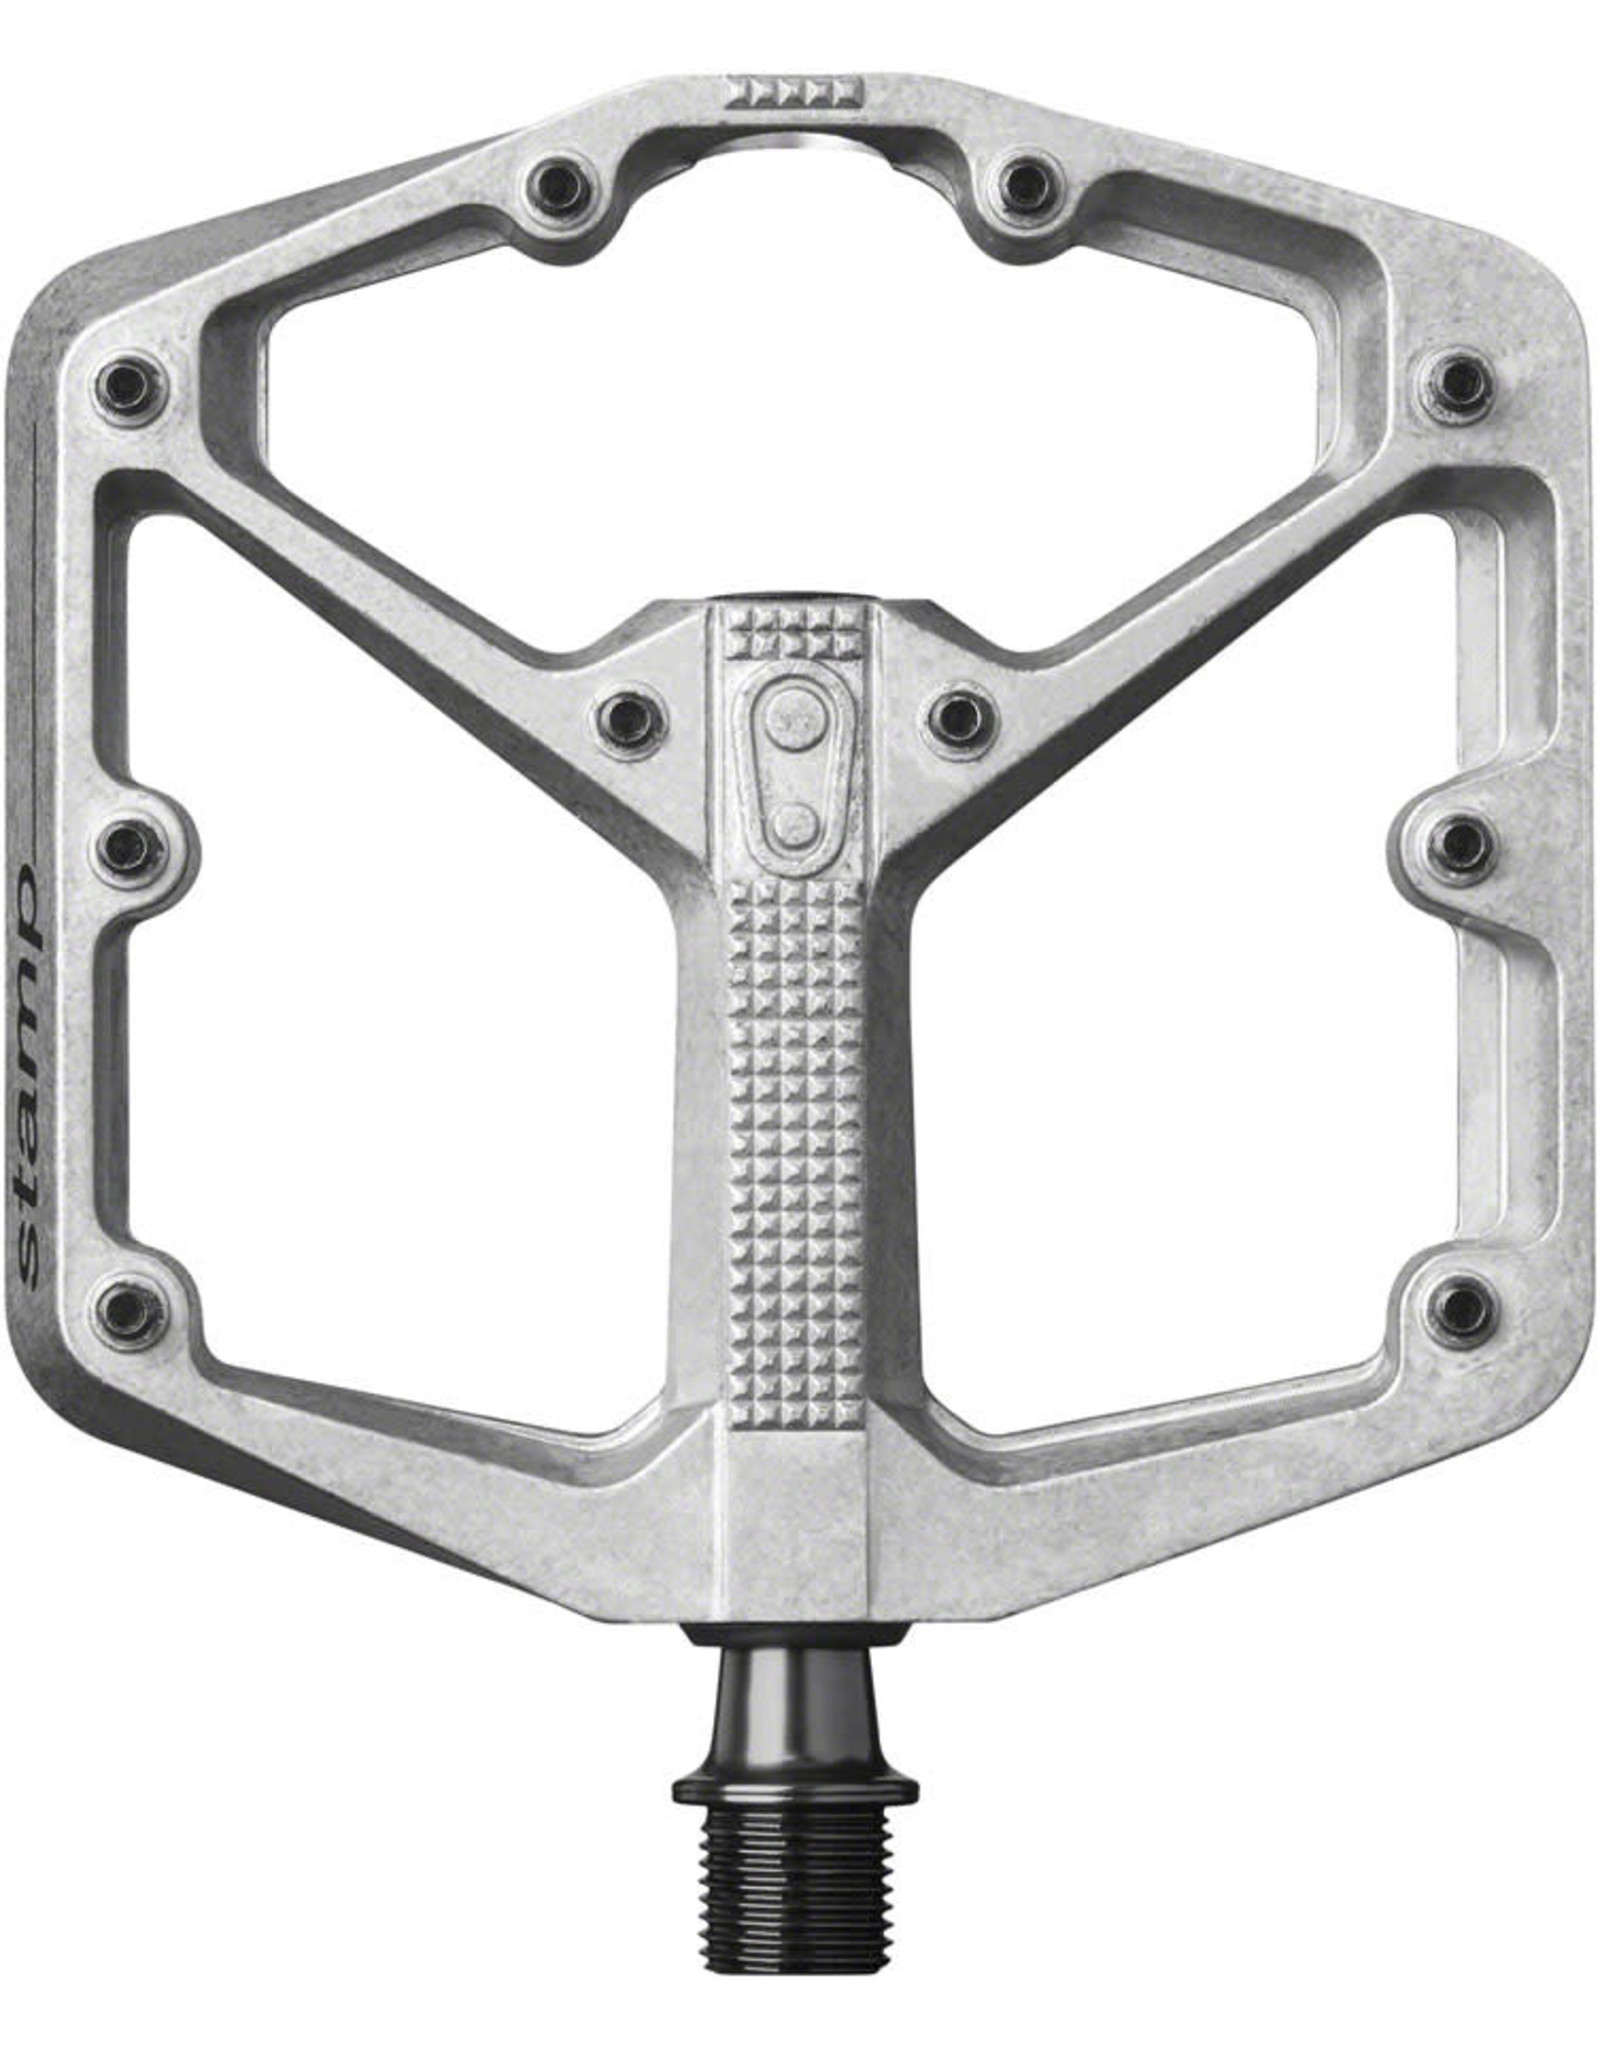 Crank Brothers Crank Brothers Stamp 2 Large Raw Silver